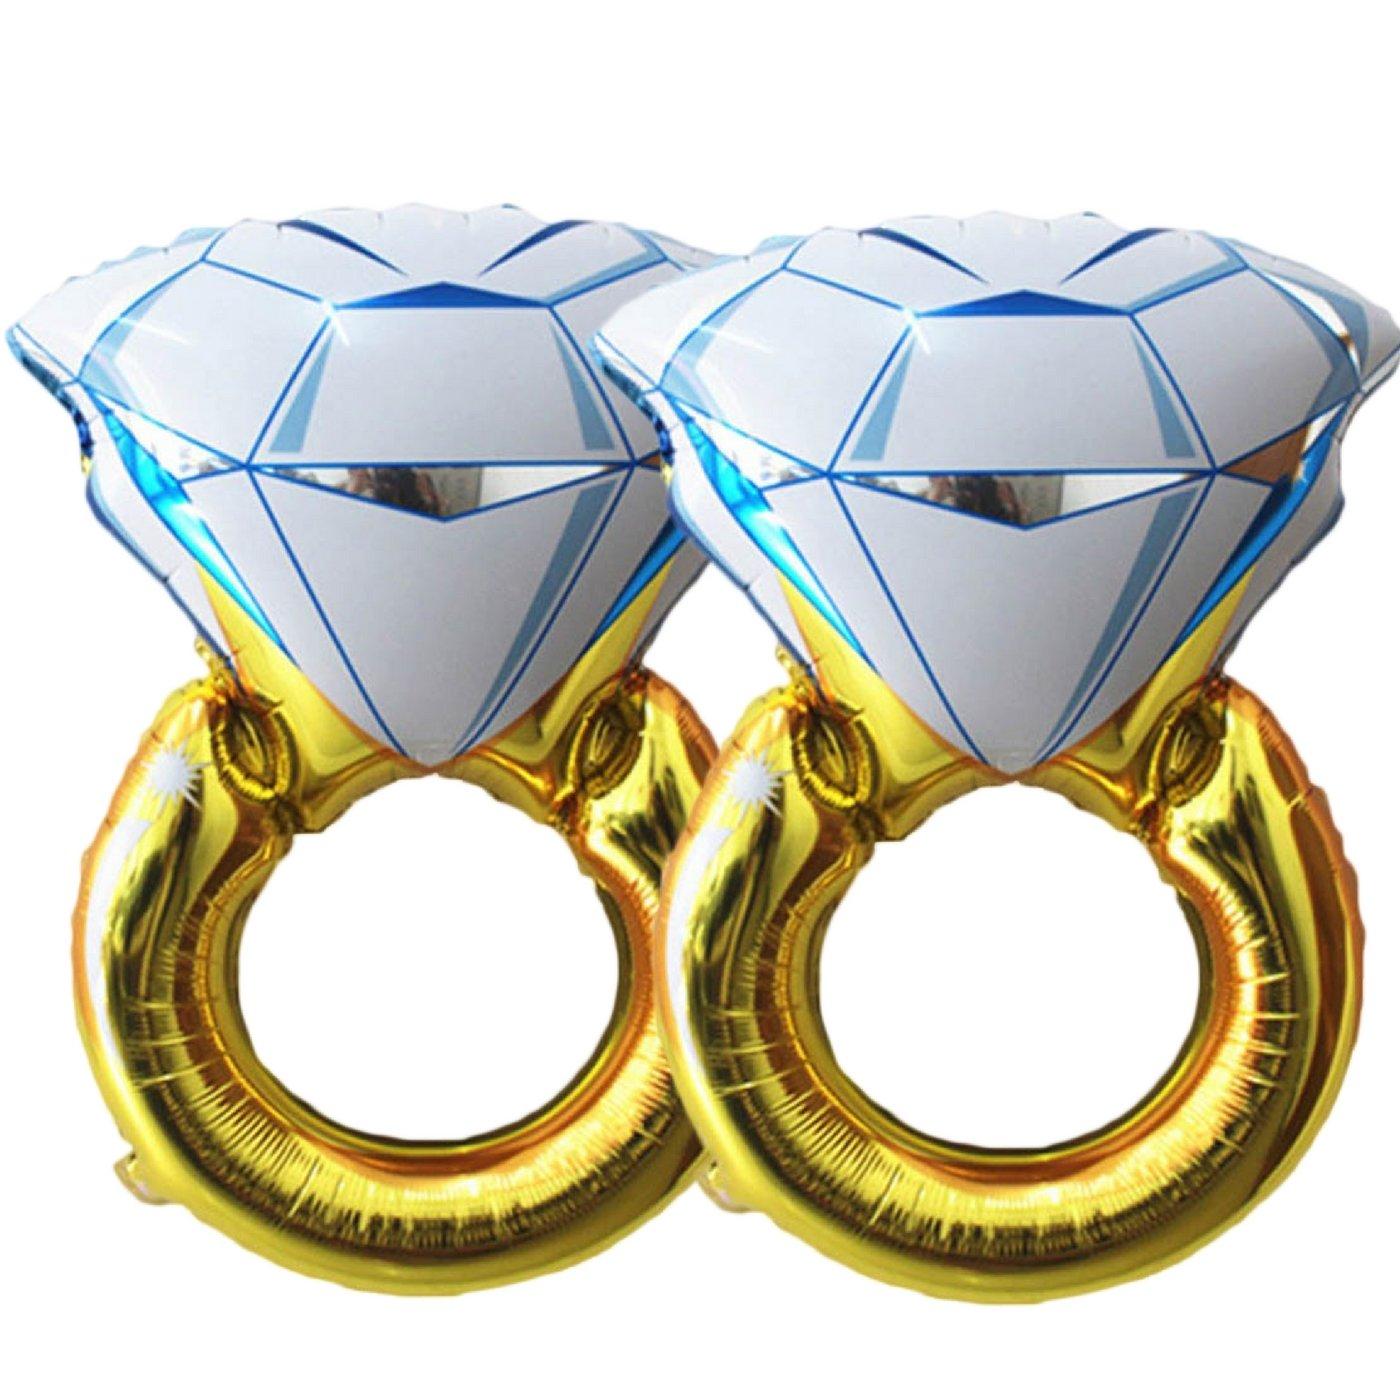 Set of 2 Giant 45'' Diamond Engagement Ring Mylar Balloons for Proposal Vow Renewal Valentine's Day Bridal Shower Wedding Bachelorette Parties Decoration. Huge Bling Favor. Extra Large Party Statement.